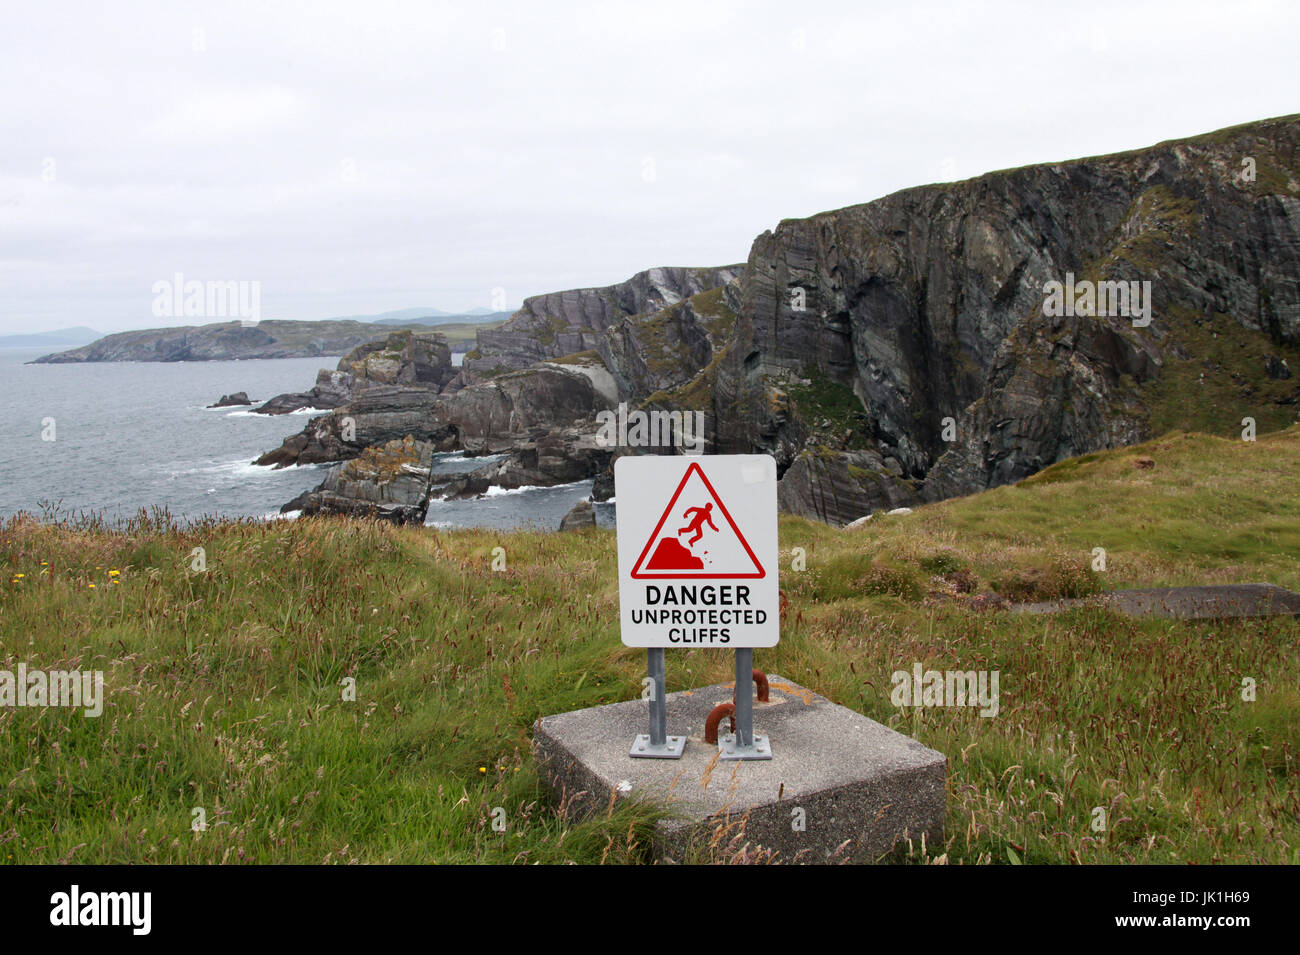 DANGER Unprotected Cliffs Sign - Stock Image